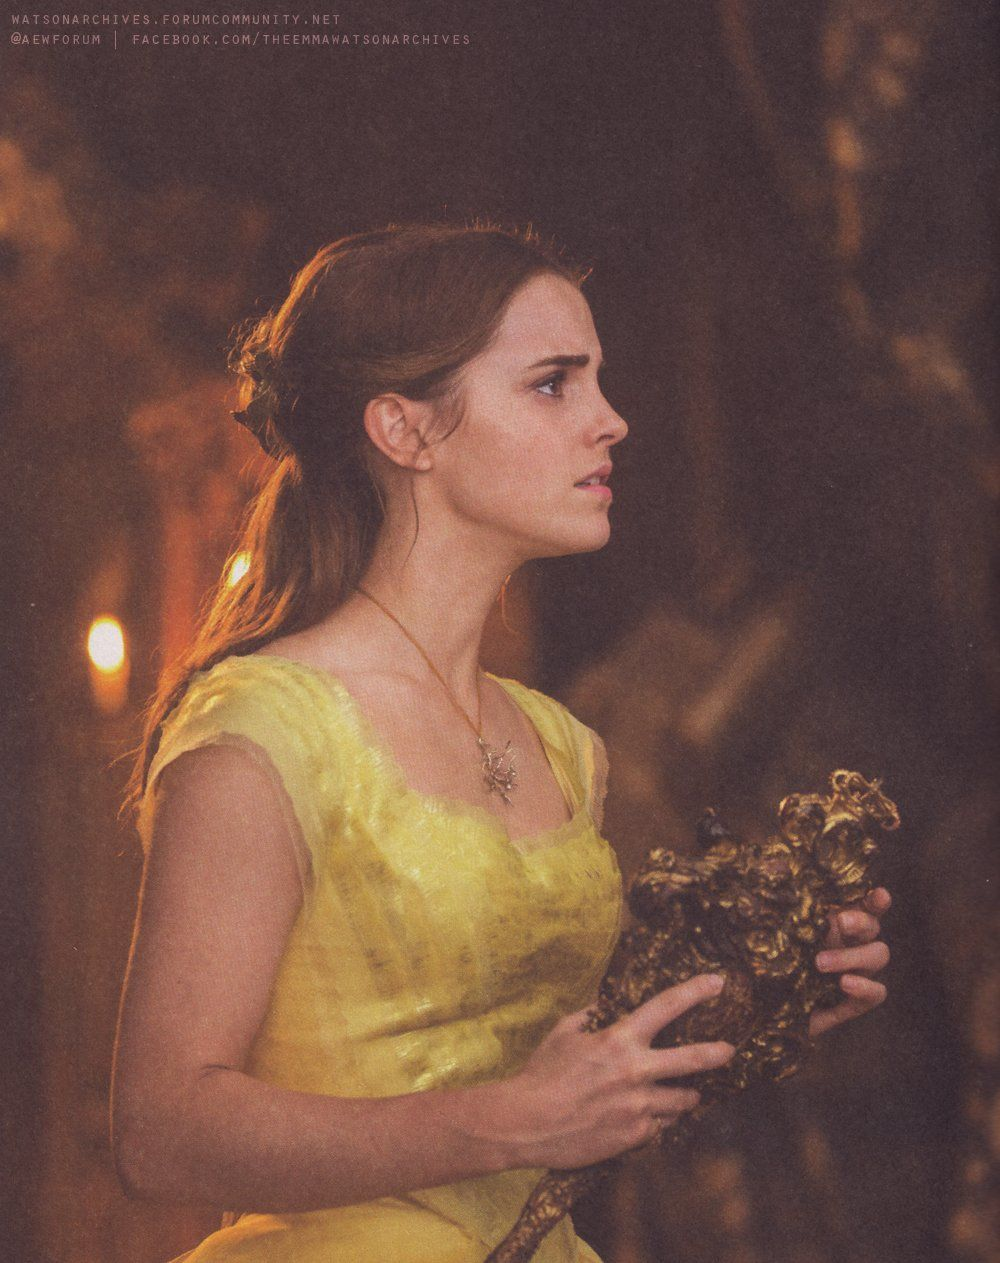 Emma Watson As Belle From The New LIVE Action Beauty And Beast After